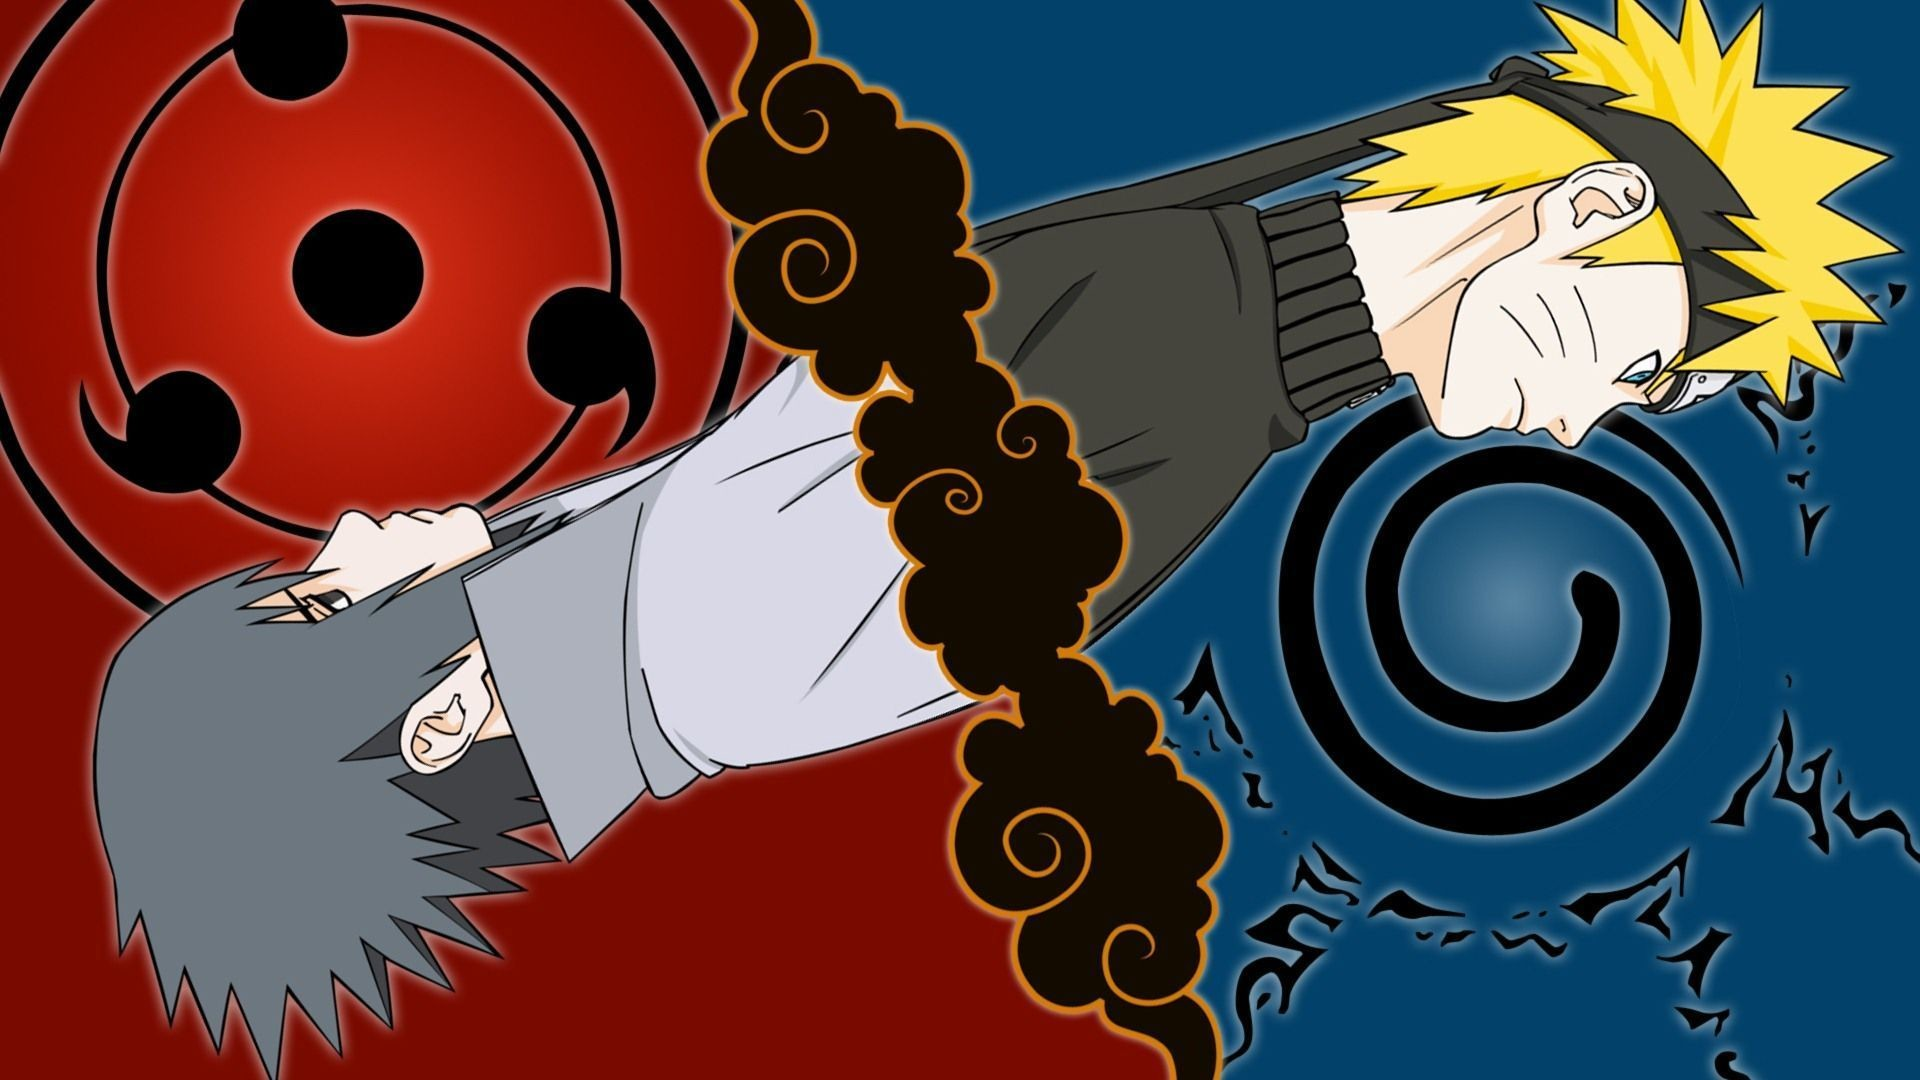 1920x1080 Naruto Uzumaki Sasuke Uchiha HD Wallpapers A Naruto Sasuke Wallpapers